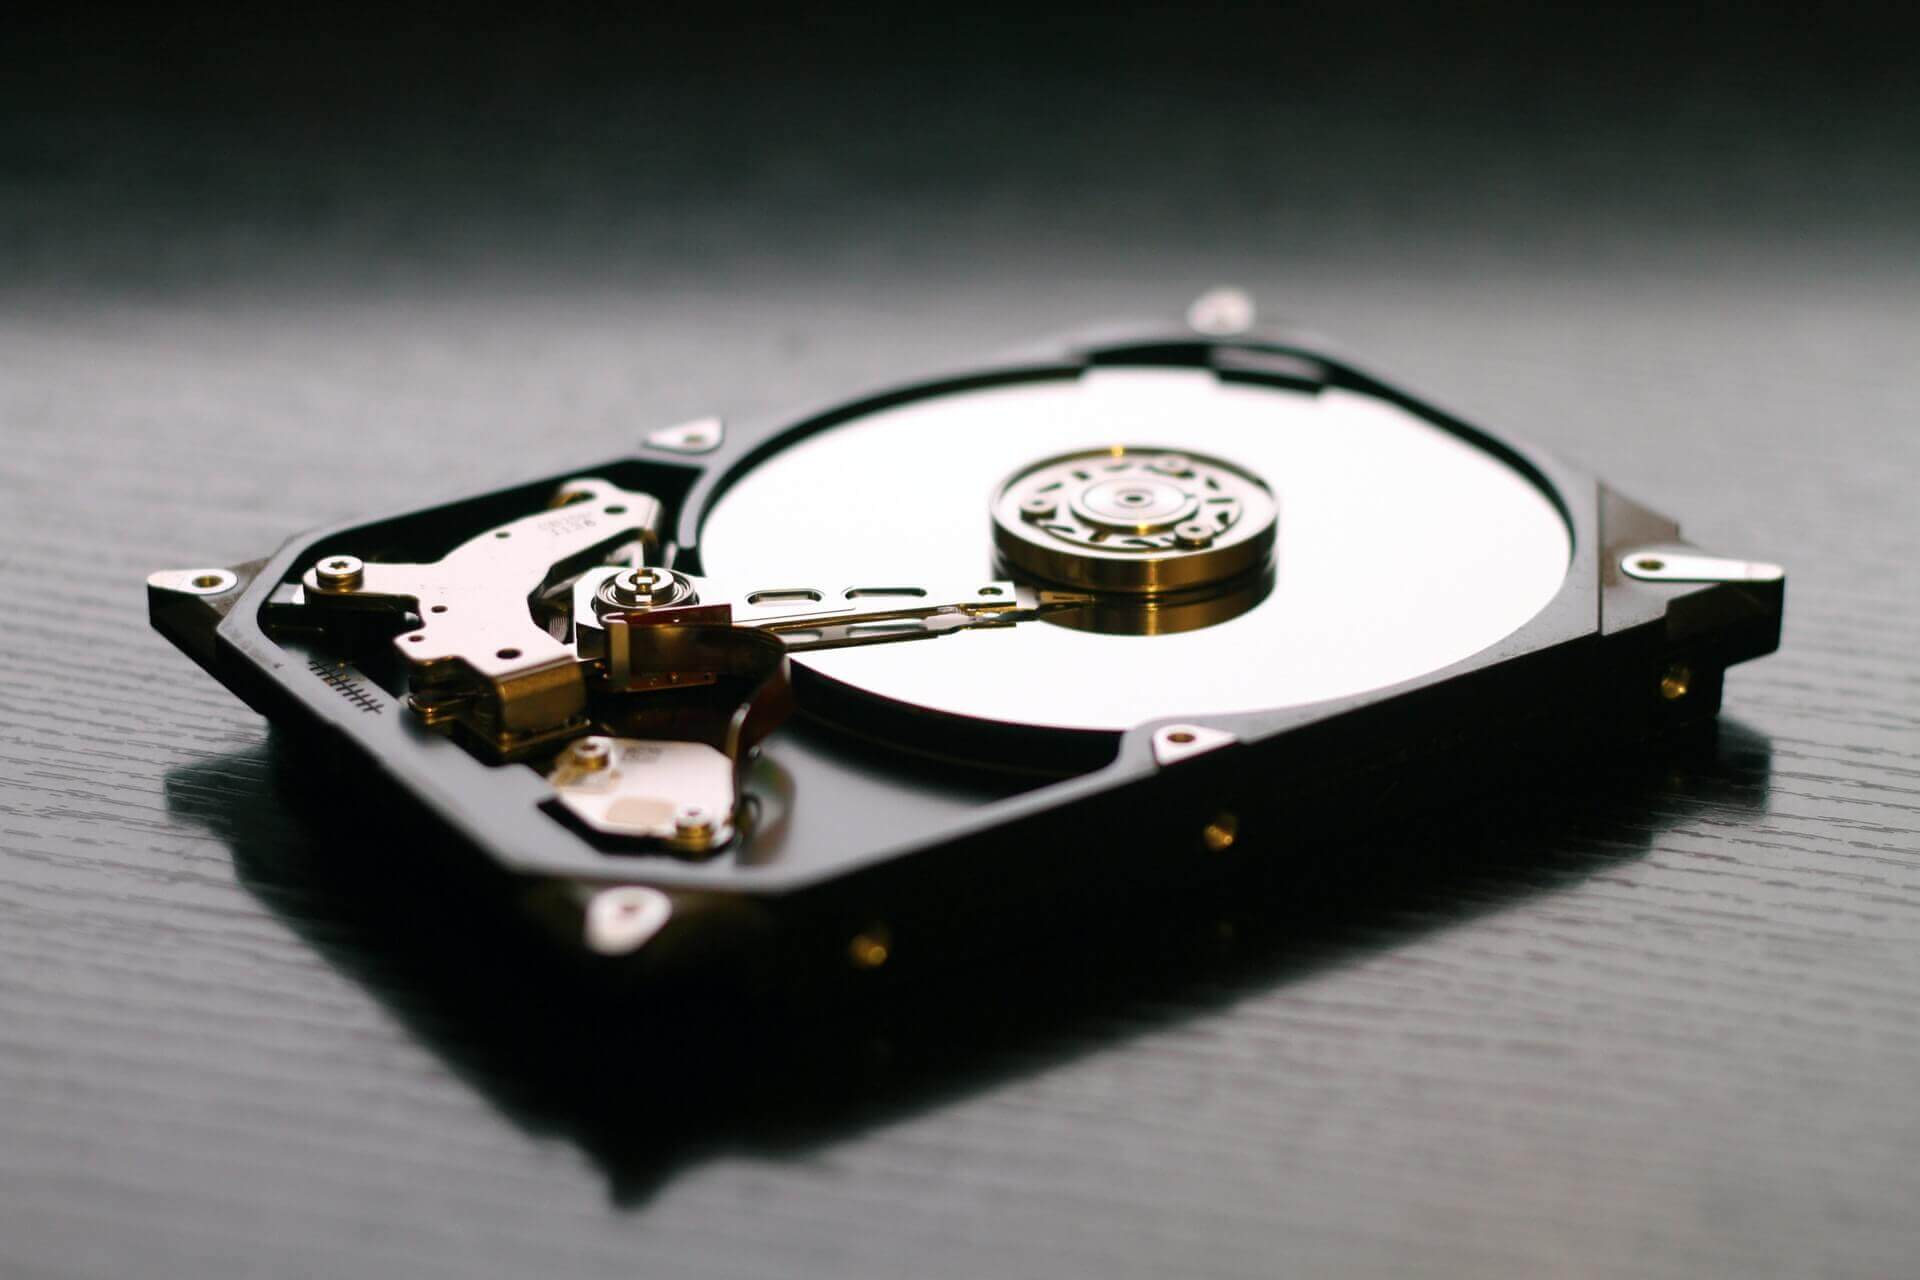 Adding a hard drive in CentOS 7